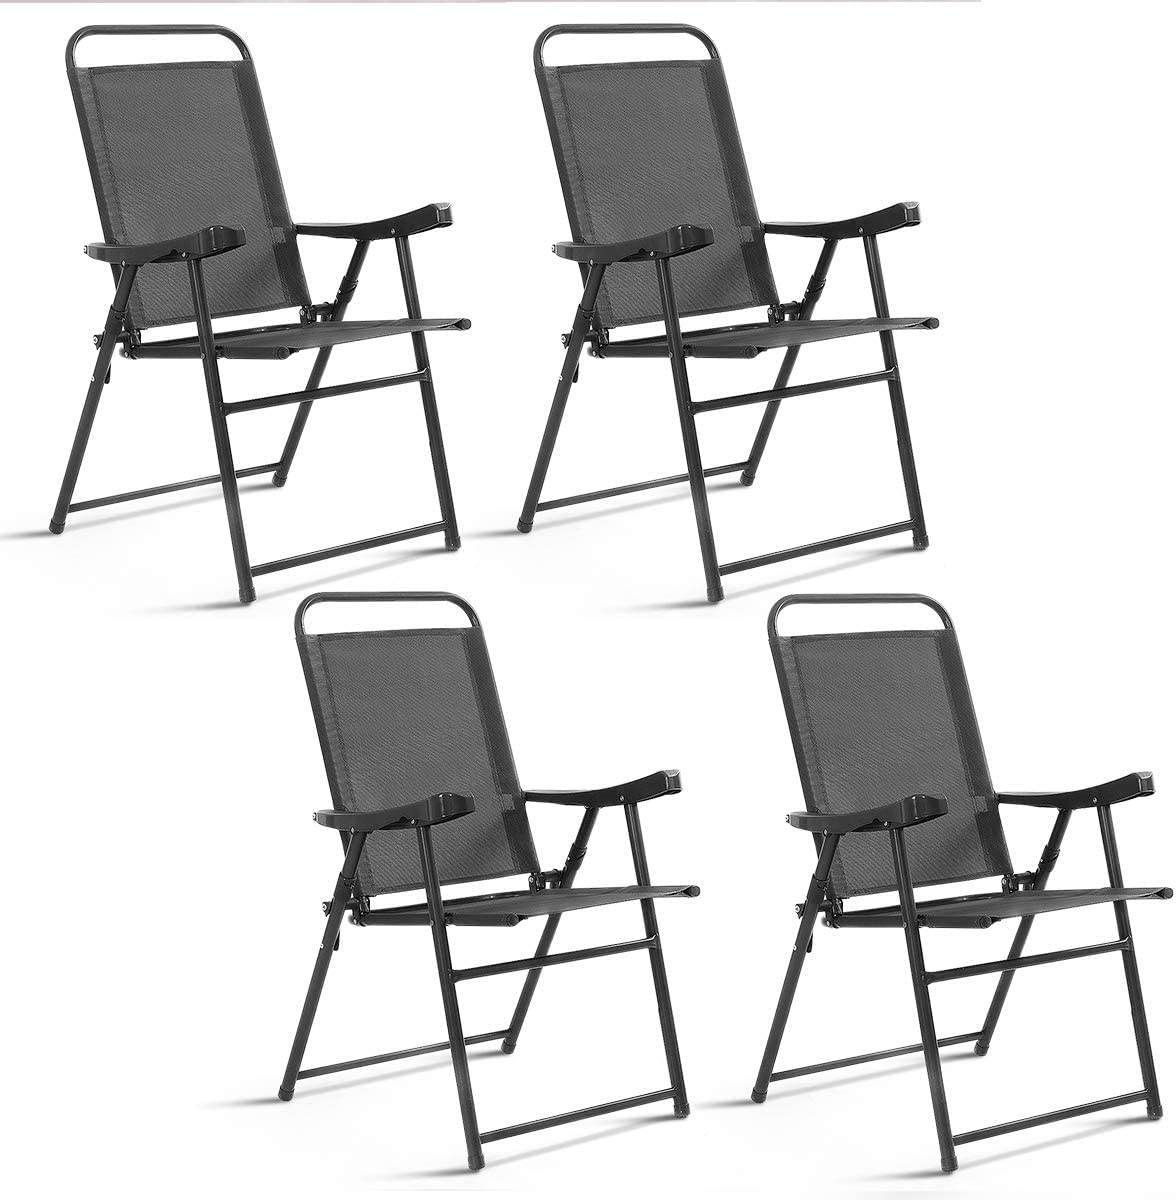 ReunionG 4 PCS Folding Sling Chairs,Outdoor Patio Furniture with Armrest, Camping Lawn Pool Beach Chairs Set, Adjustable Back Chairs, Iron Frame Portable Chairs